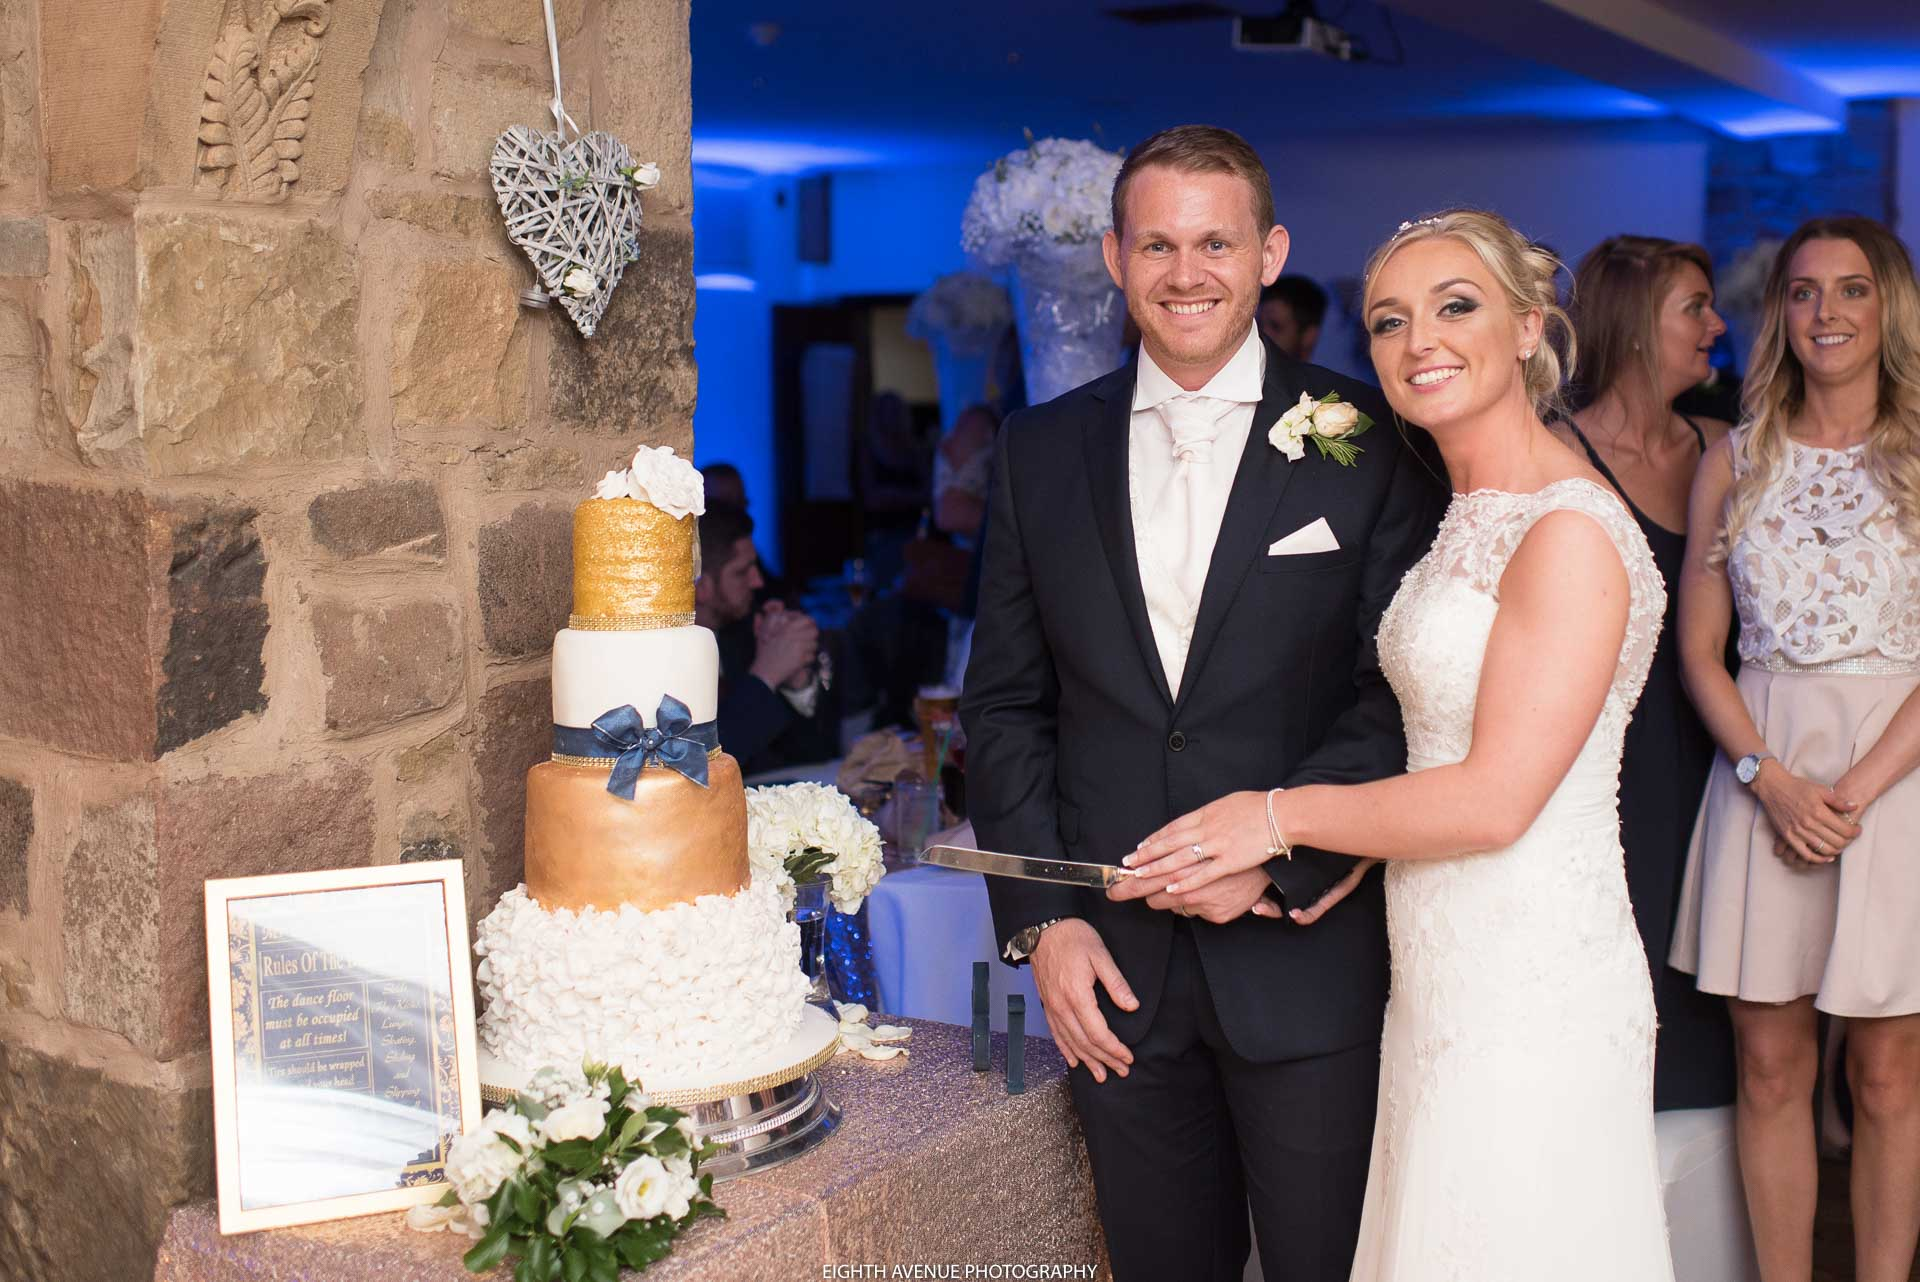 Bride and groom cutting the cake at Beeston Manor